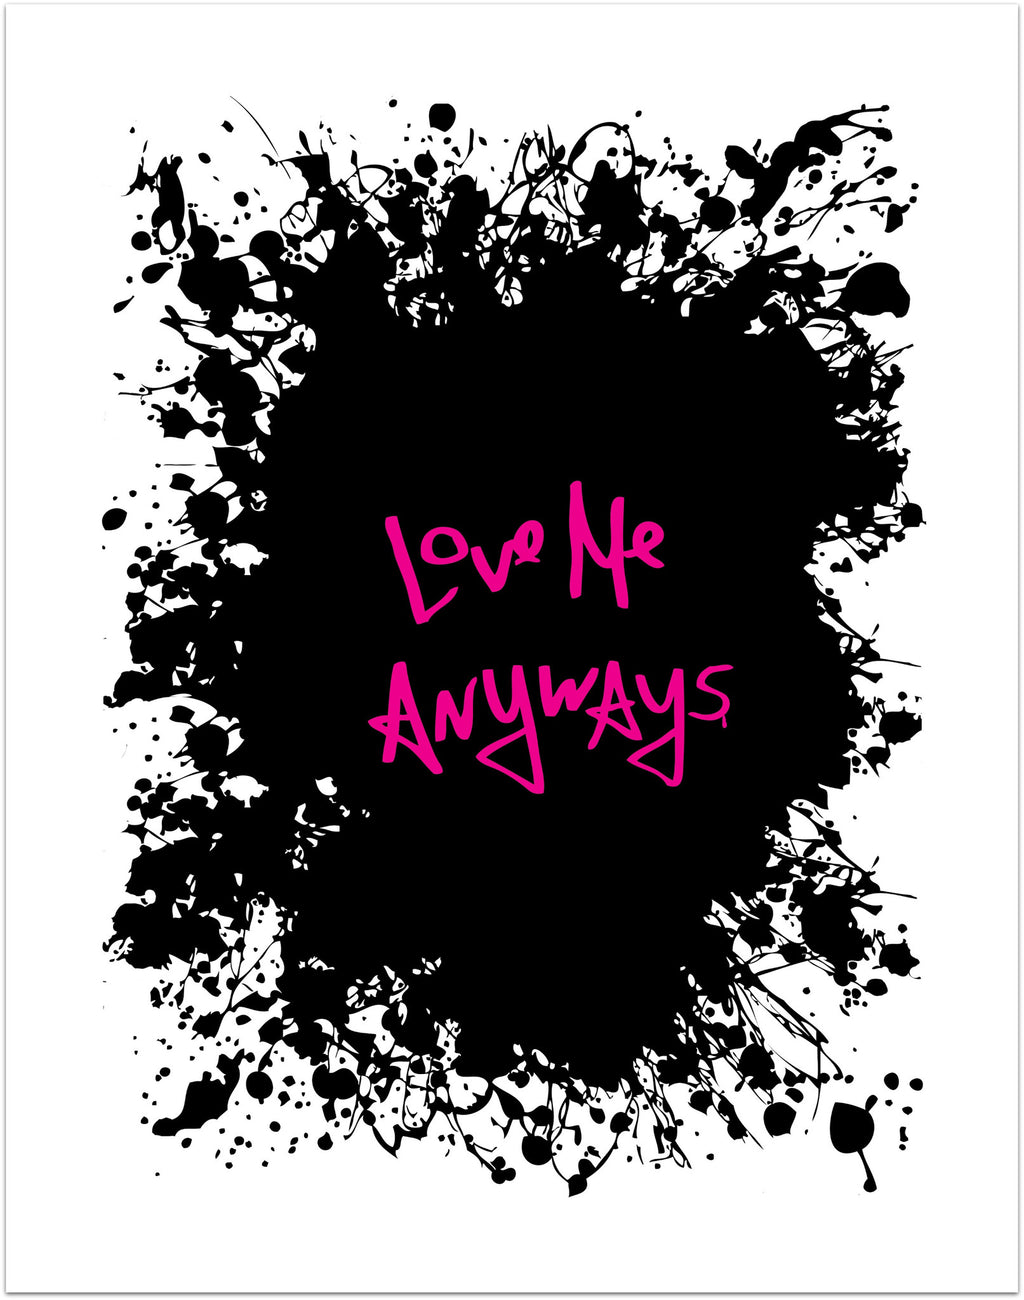 Love Me Anyways Limited Edition Screen Print -  Paper and Fabric